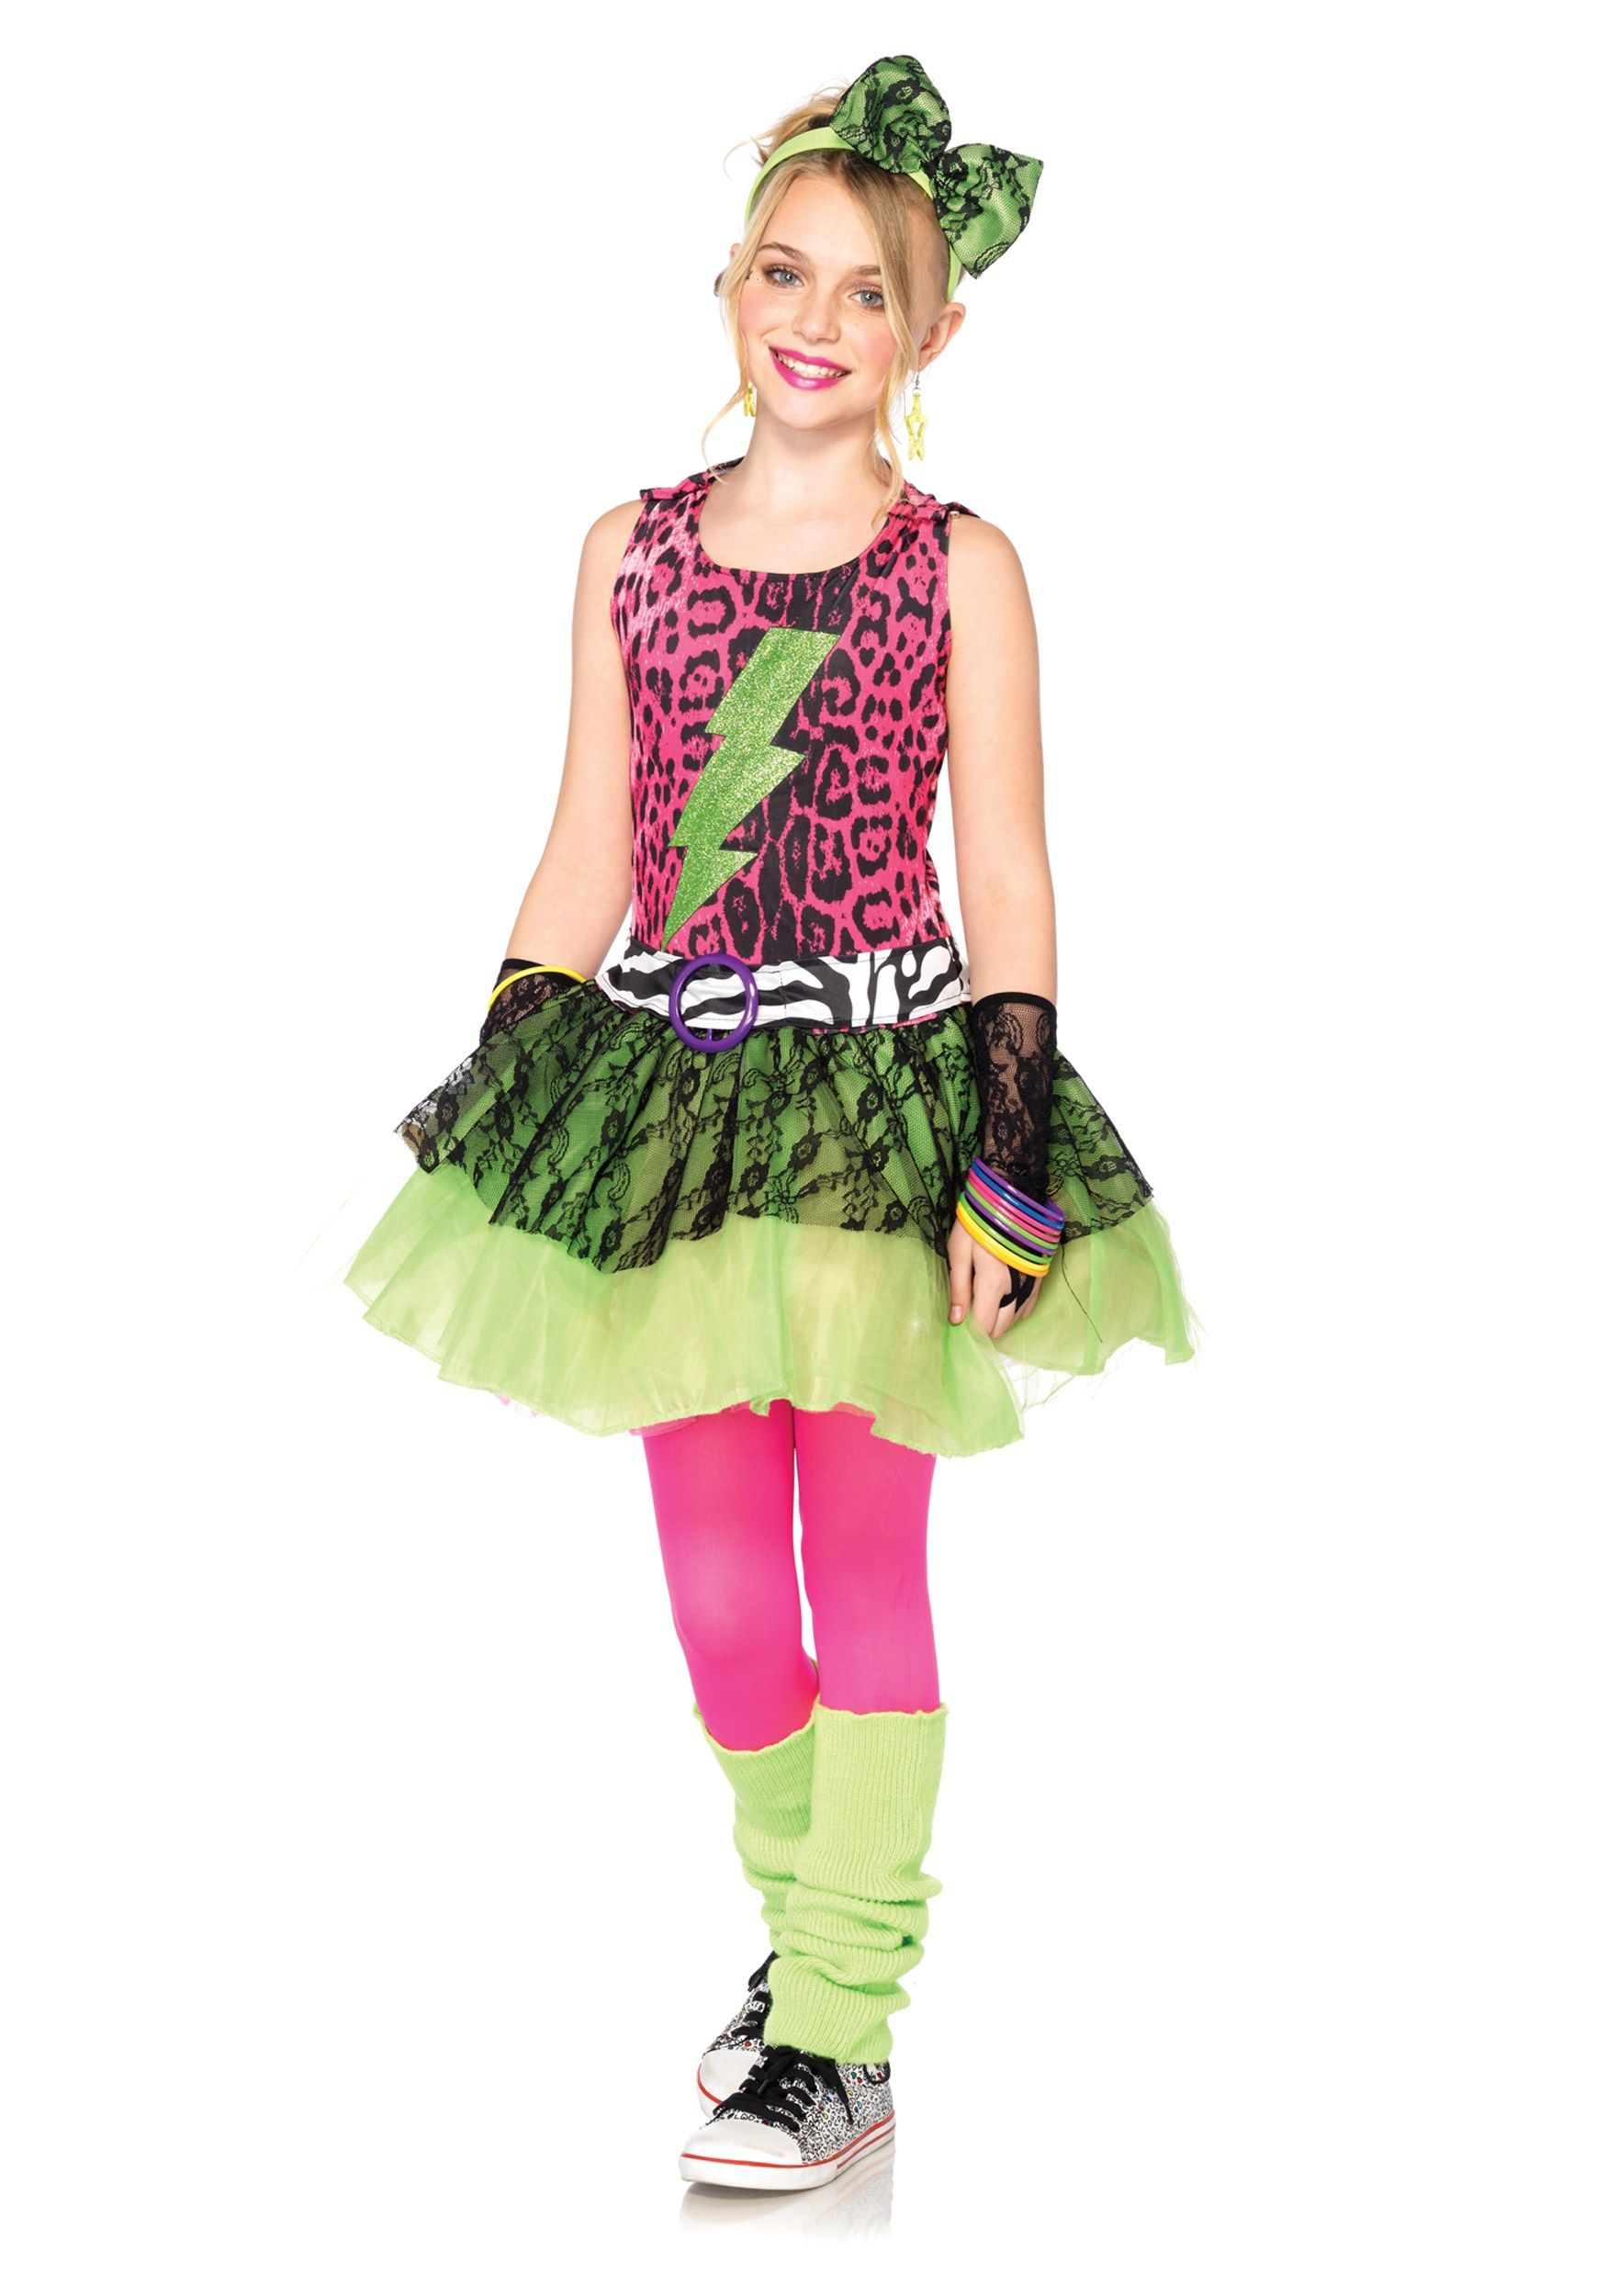 ideas for a 1980's halloween costume for girl - Google Search ...